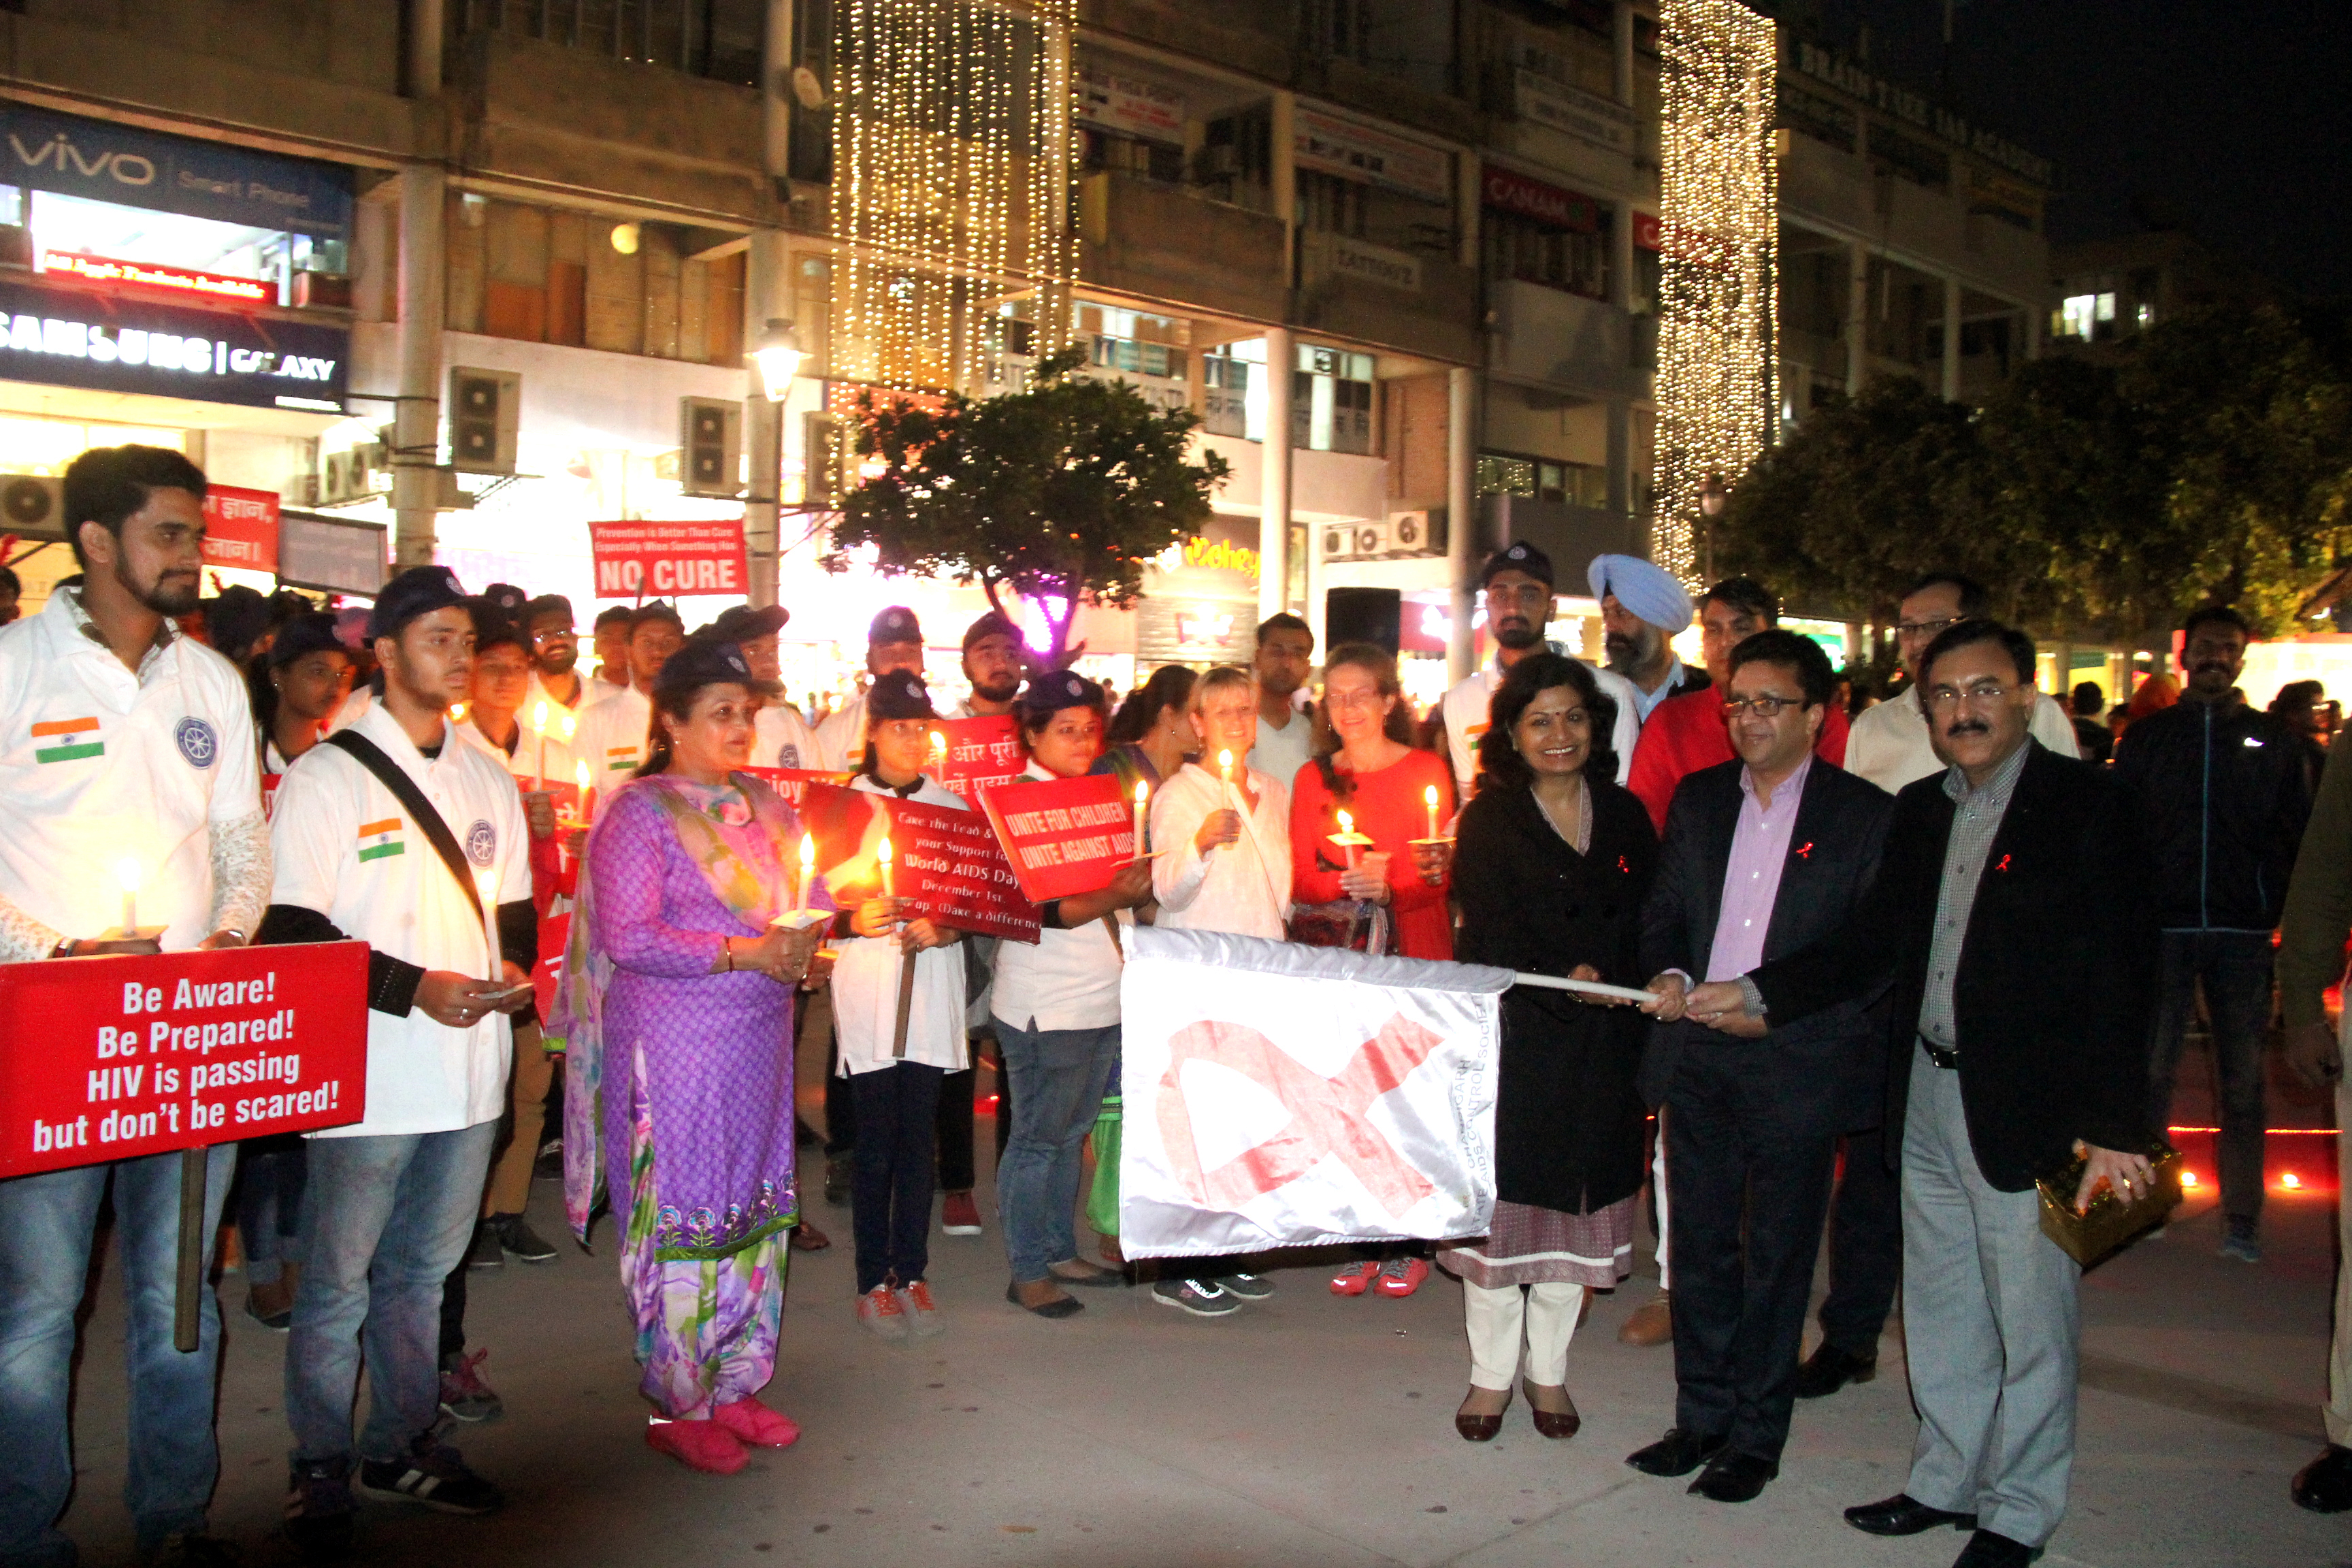 UT Home Secretary, Shri Anurag Agarwal  Flag off the Candle March at the inauguration of  World Aids day  Function at Plaza Sector 17  Chandigarh on Thursday December 1, 2016.